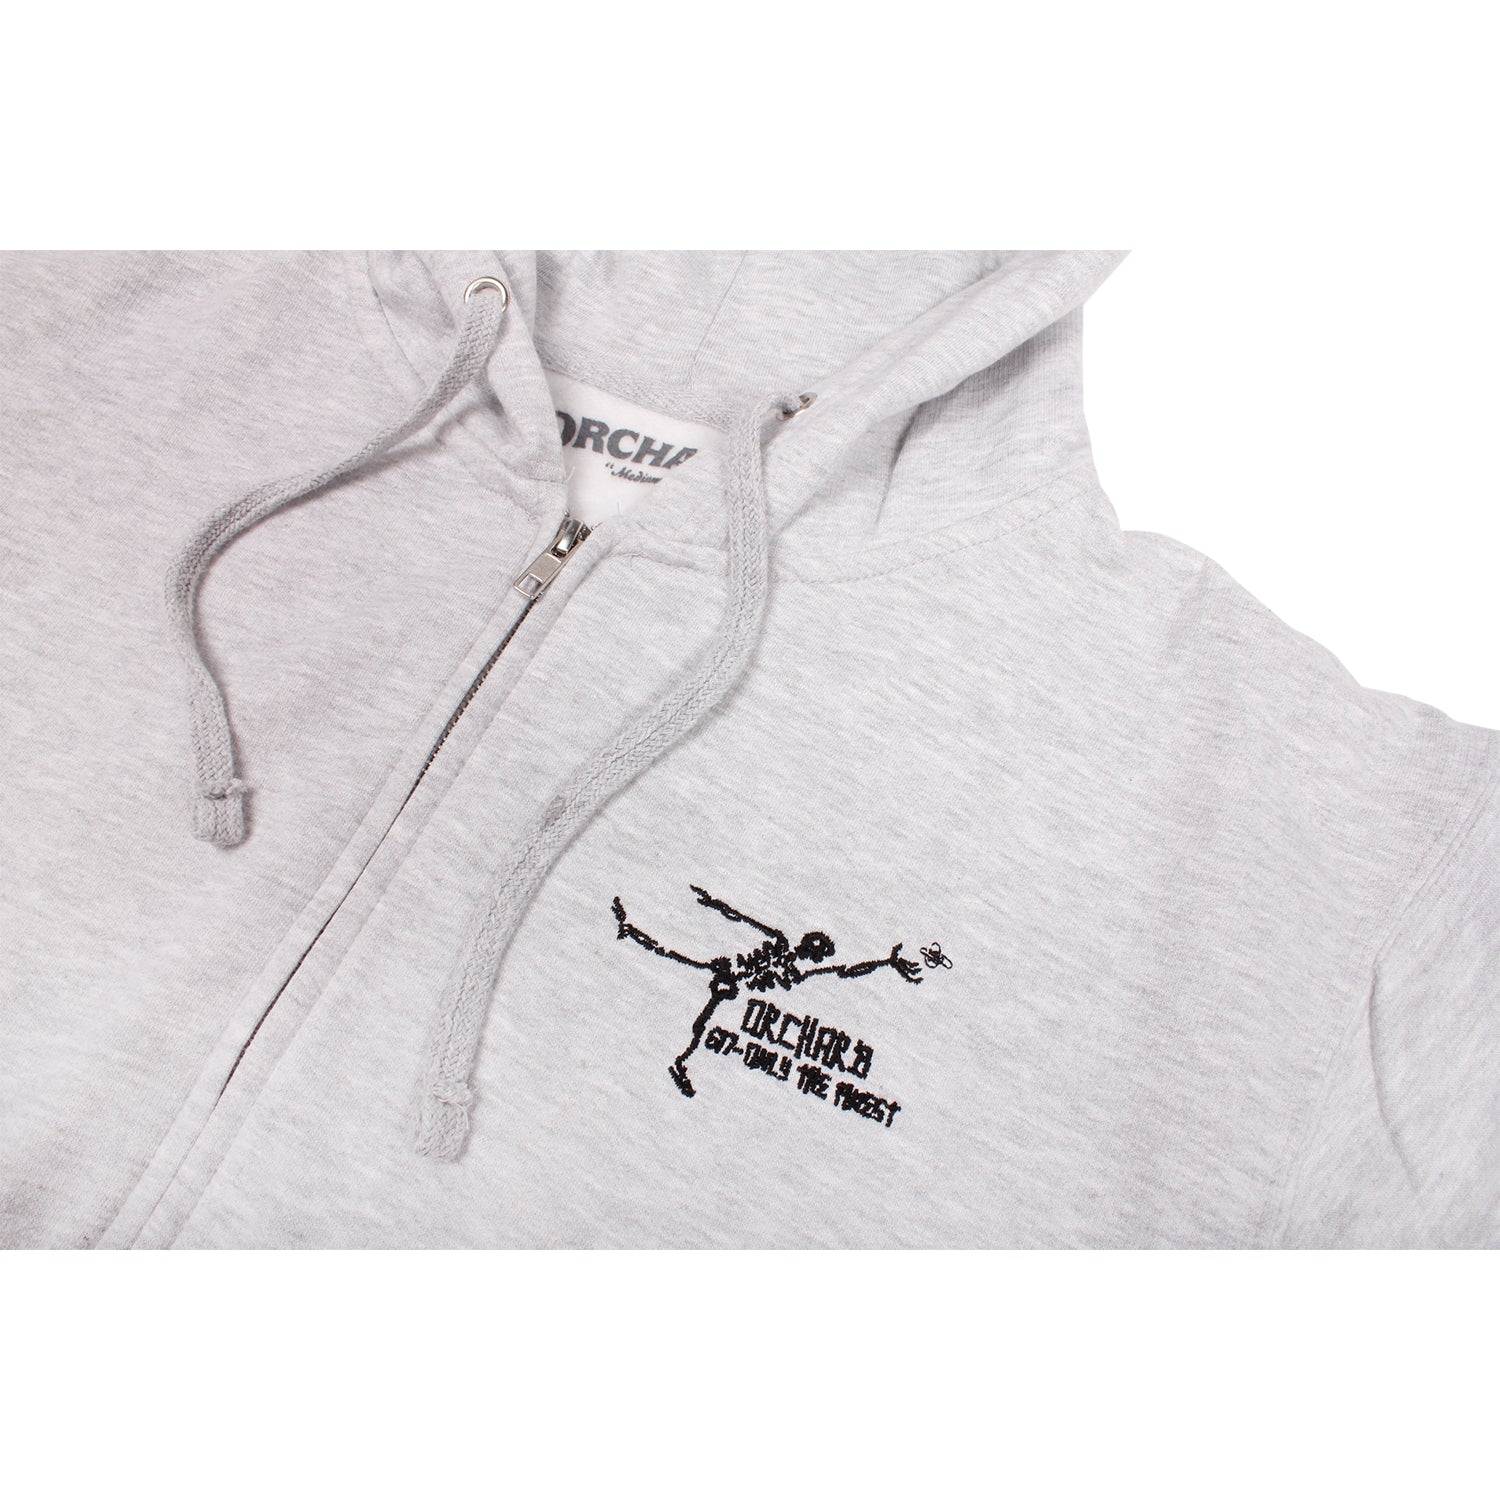 Orchard Gonz Only The Finest Zip Up Sweatshirt Ash